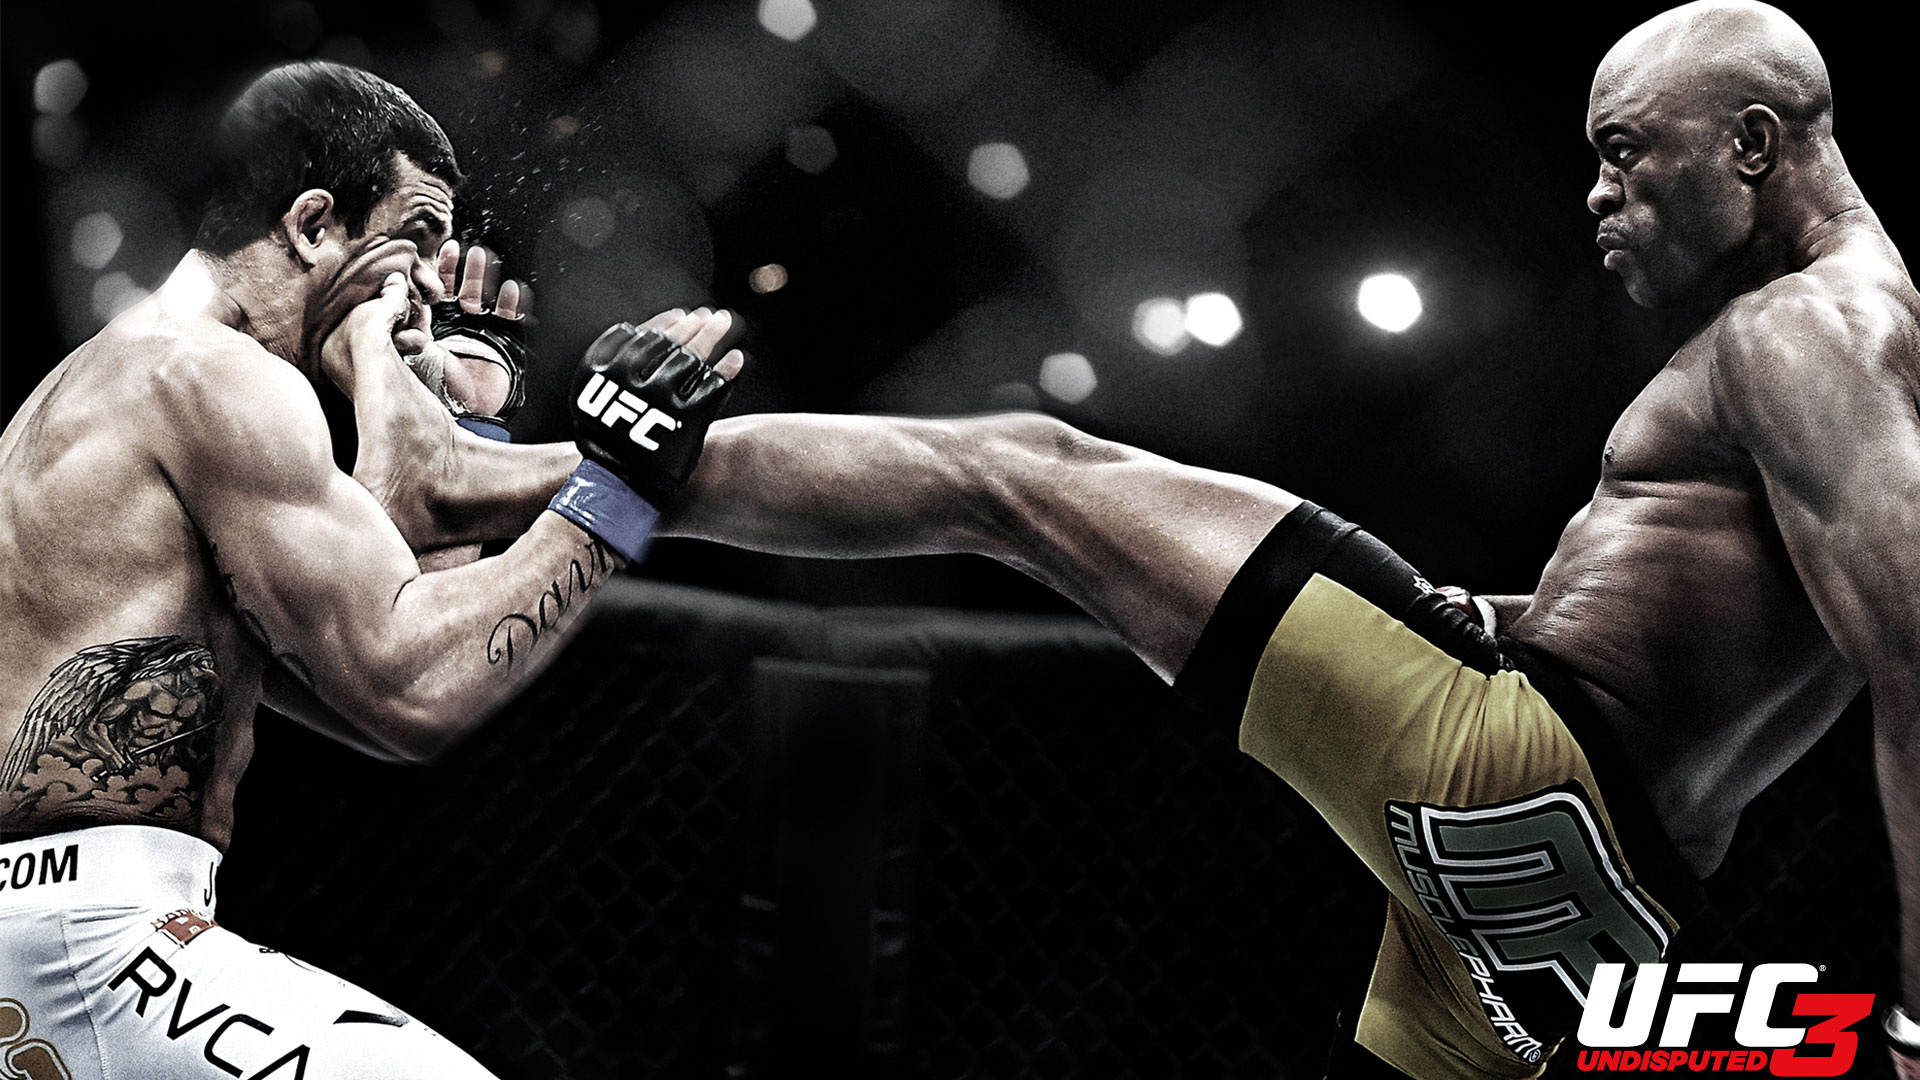 UFC 1920x1080 Hd Images   last added page 2 1920x1080